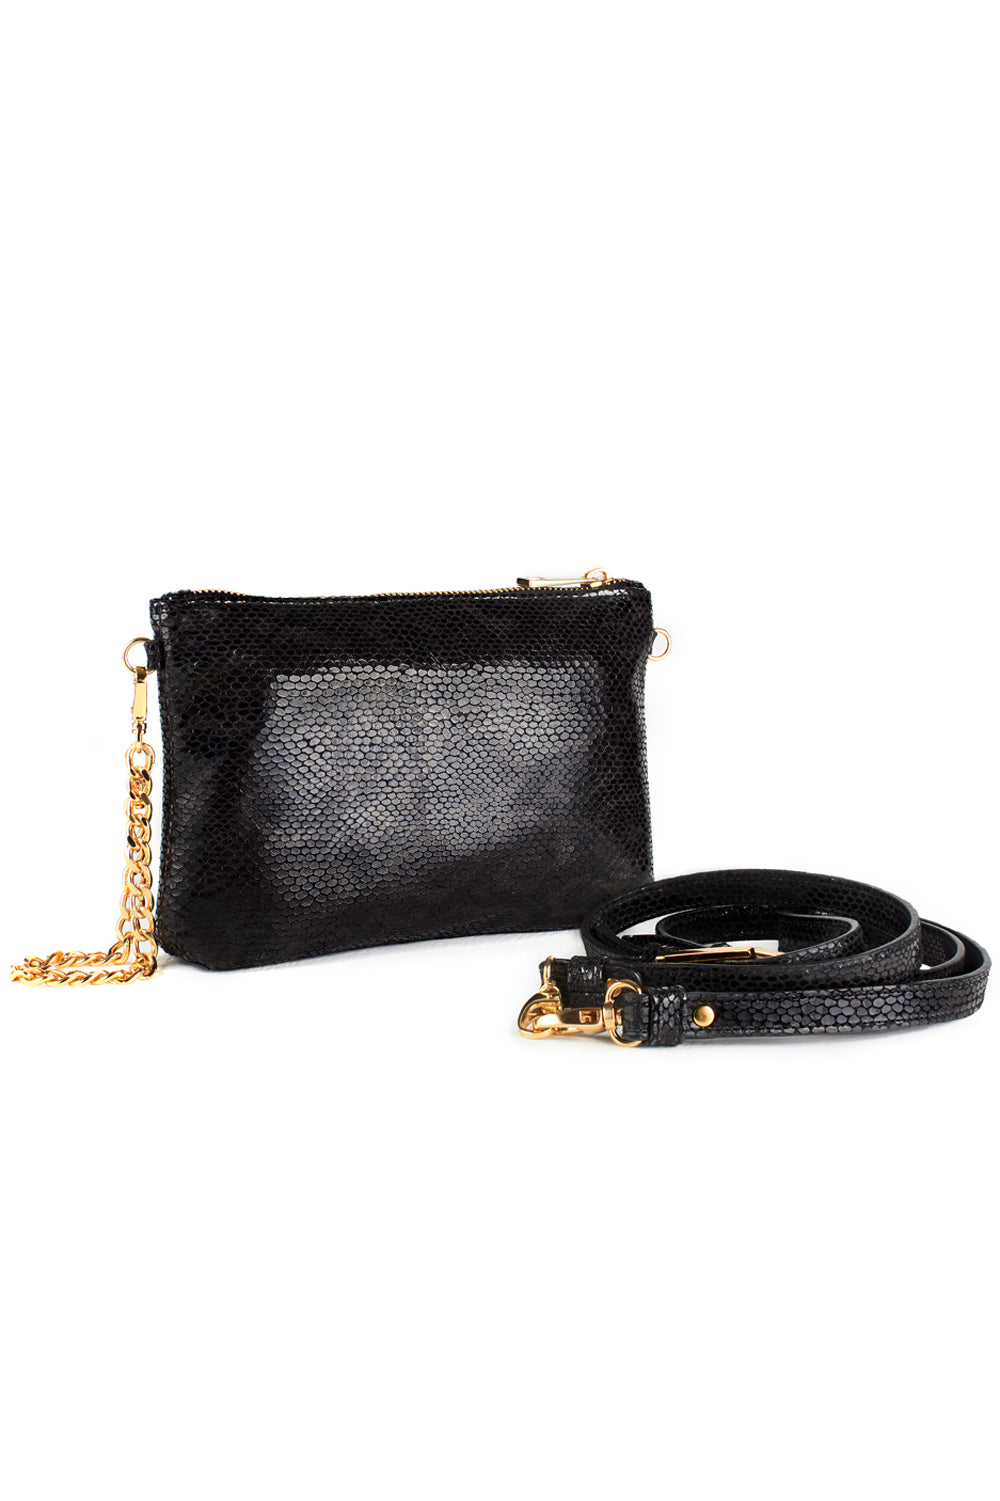 Mel Boteri | Black, Metallic Snake-Effect Leather 'Kat' Pouch | With Strap